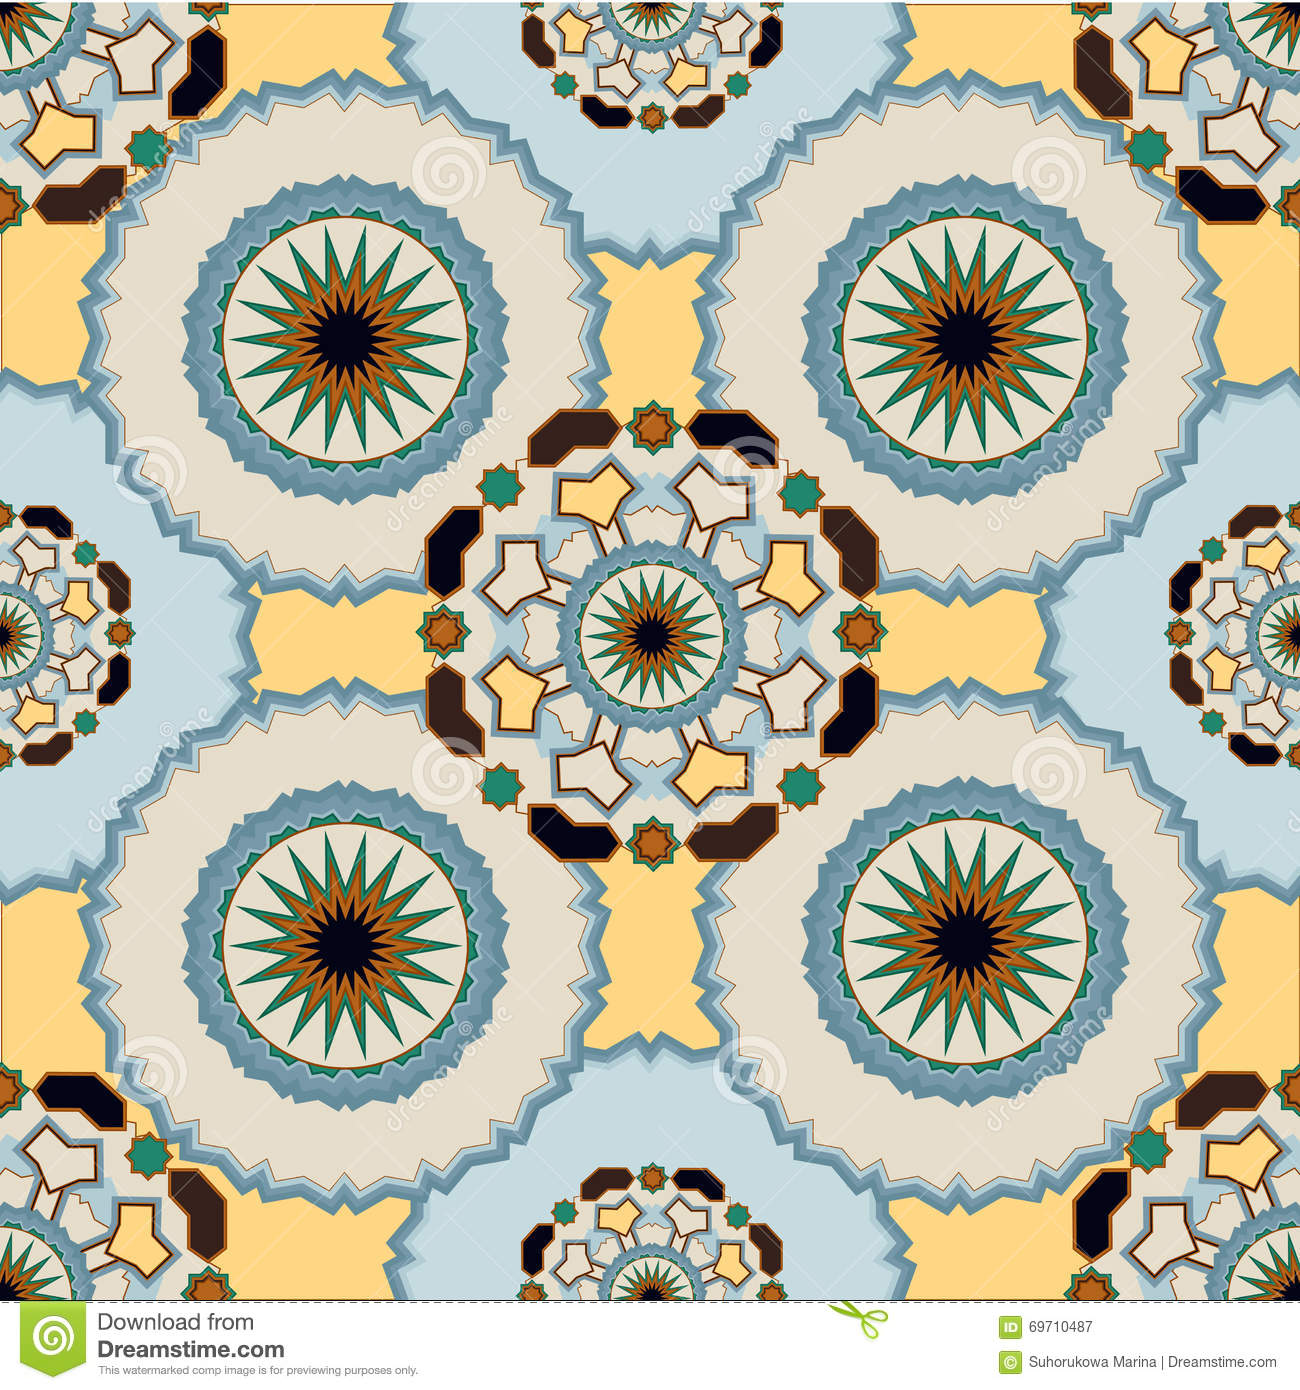 Moroccan geometric pattern royalty free stock photos image 13547078 - Moroccan Design Stock Vector Image 69710487 1300x1390 Moroccan Design Background Pattern Free Vector Art 6354 1400x980